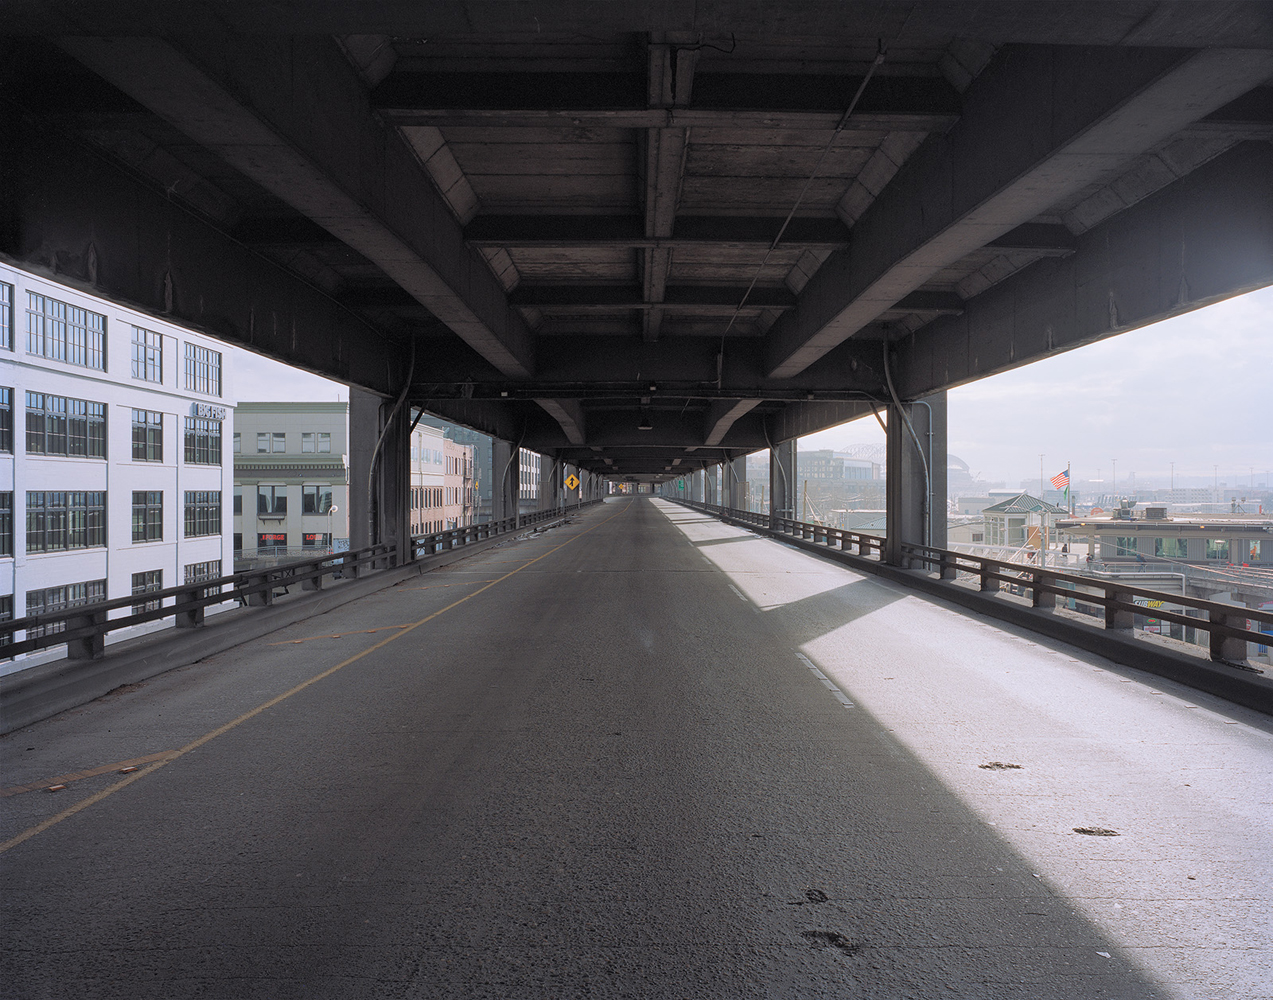 Eirik Johnson, Viaduct I, 2019